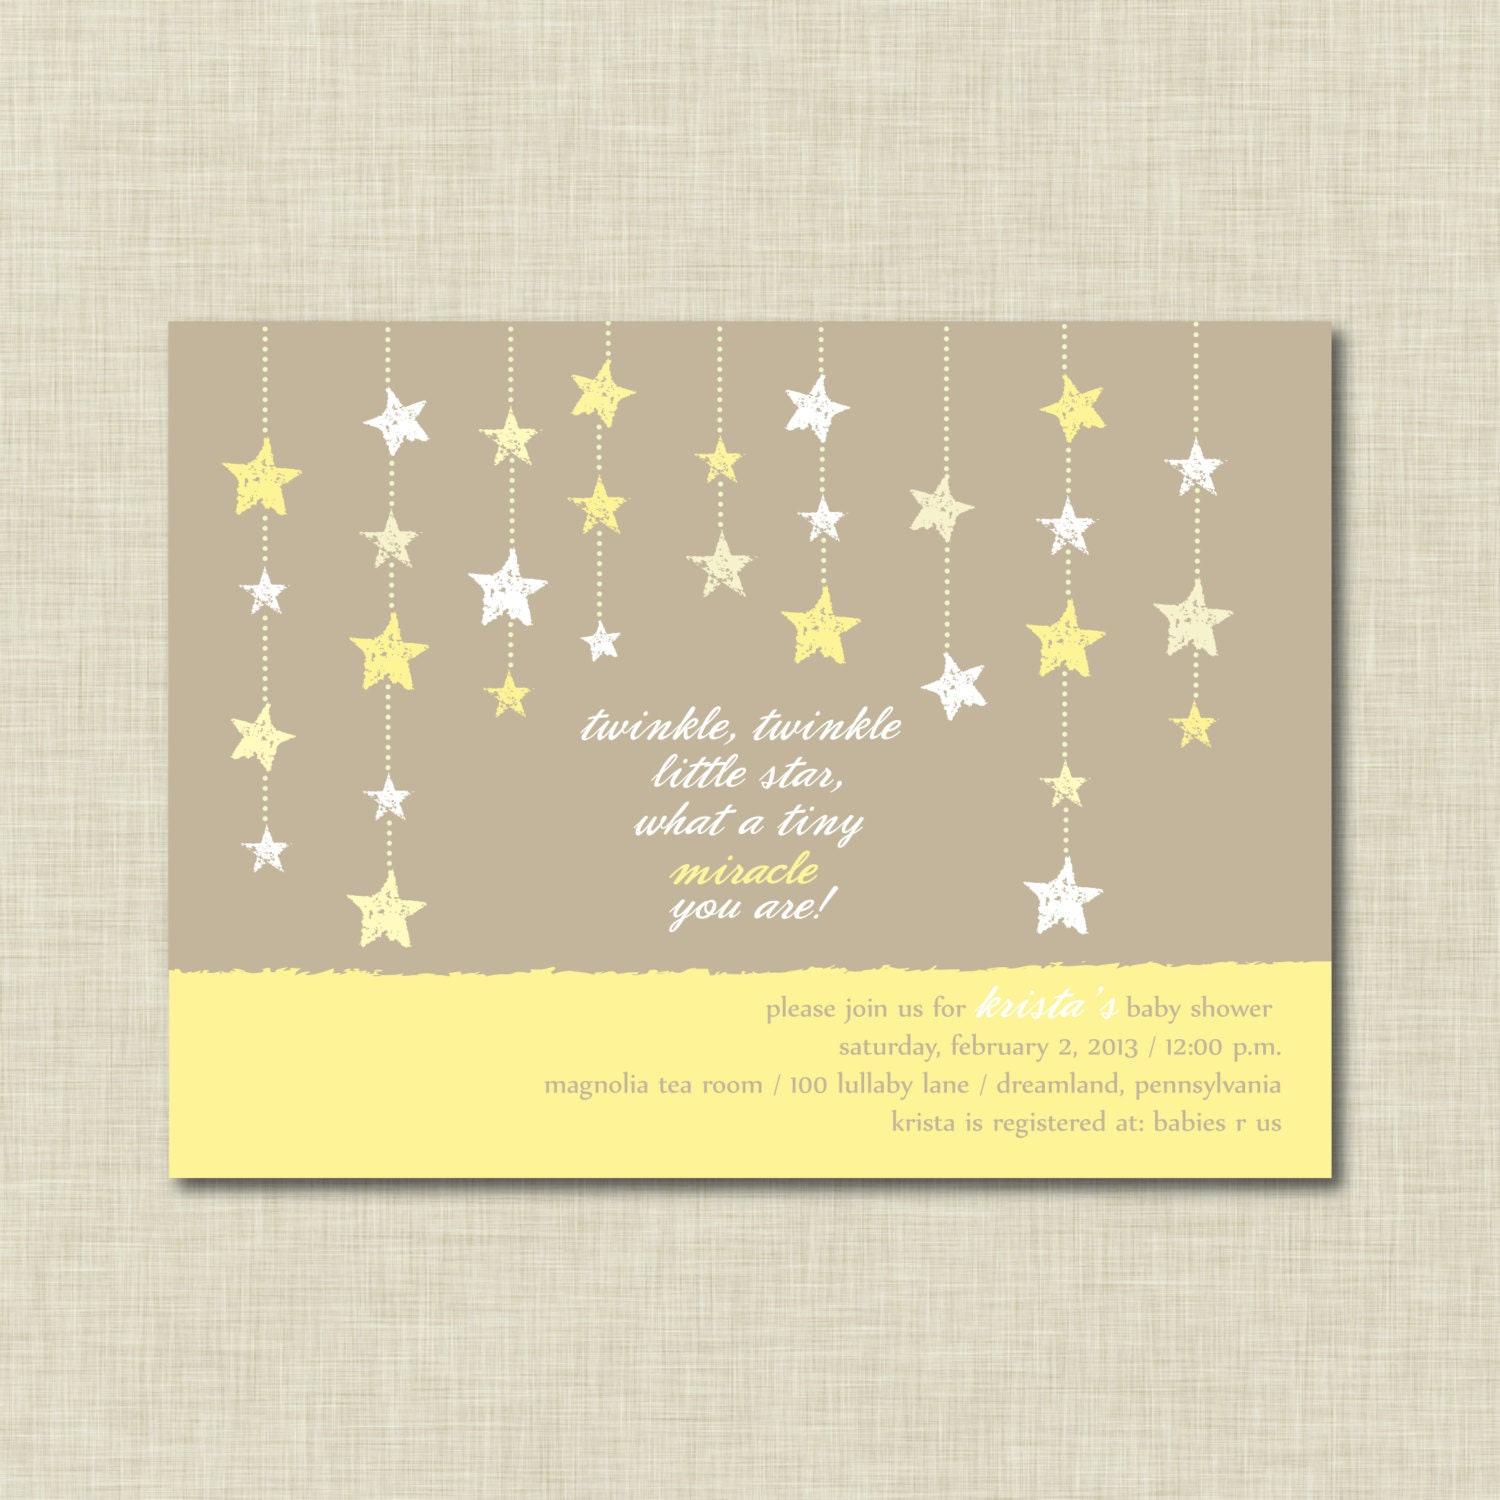 Twinkle Twinkle Little Star Baby Shower Invitations is perfect invitation layout